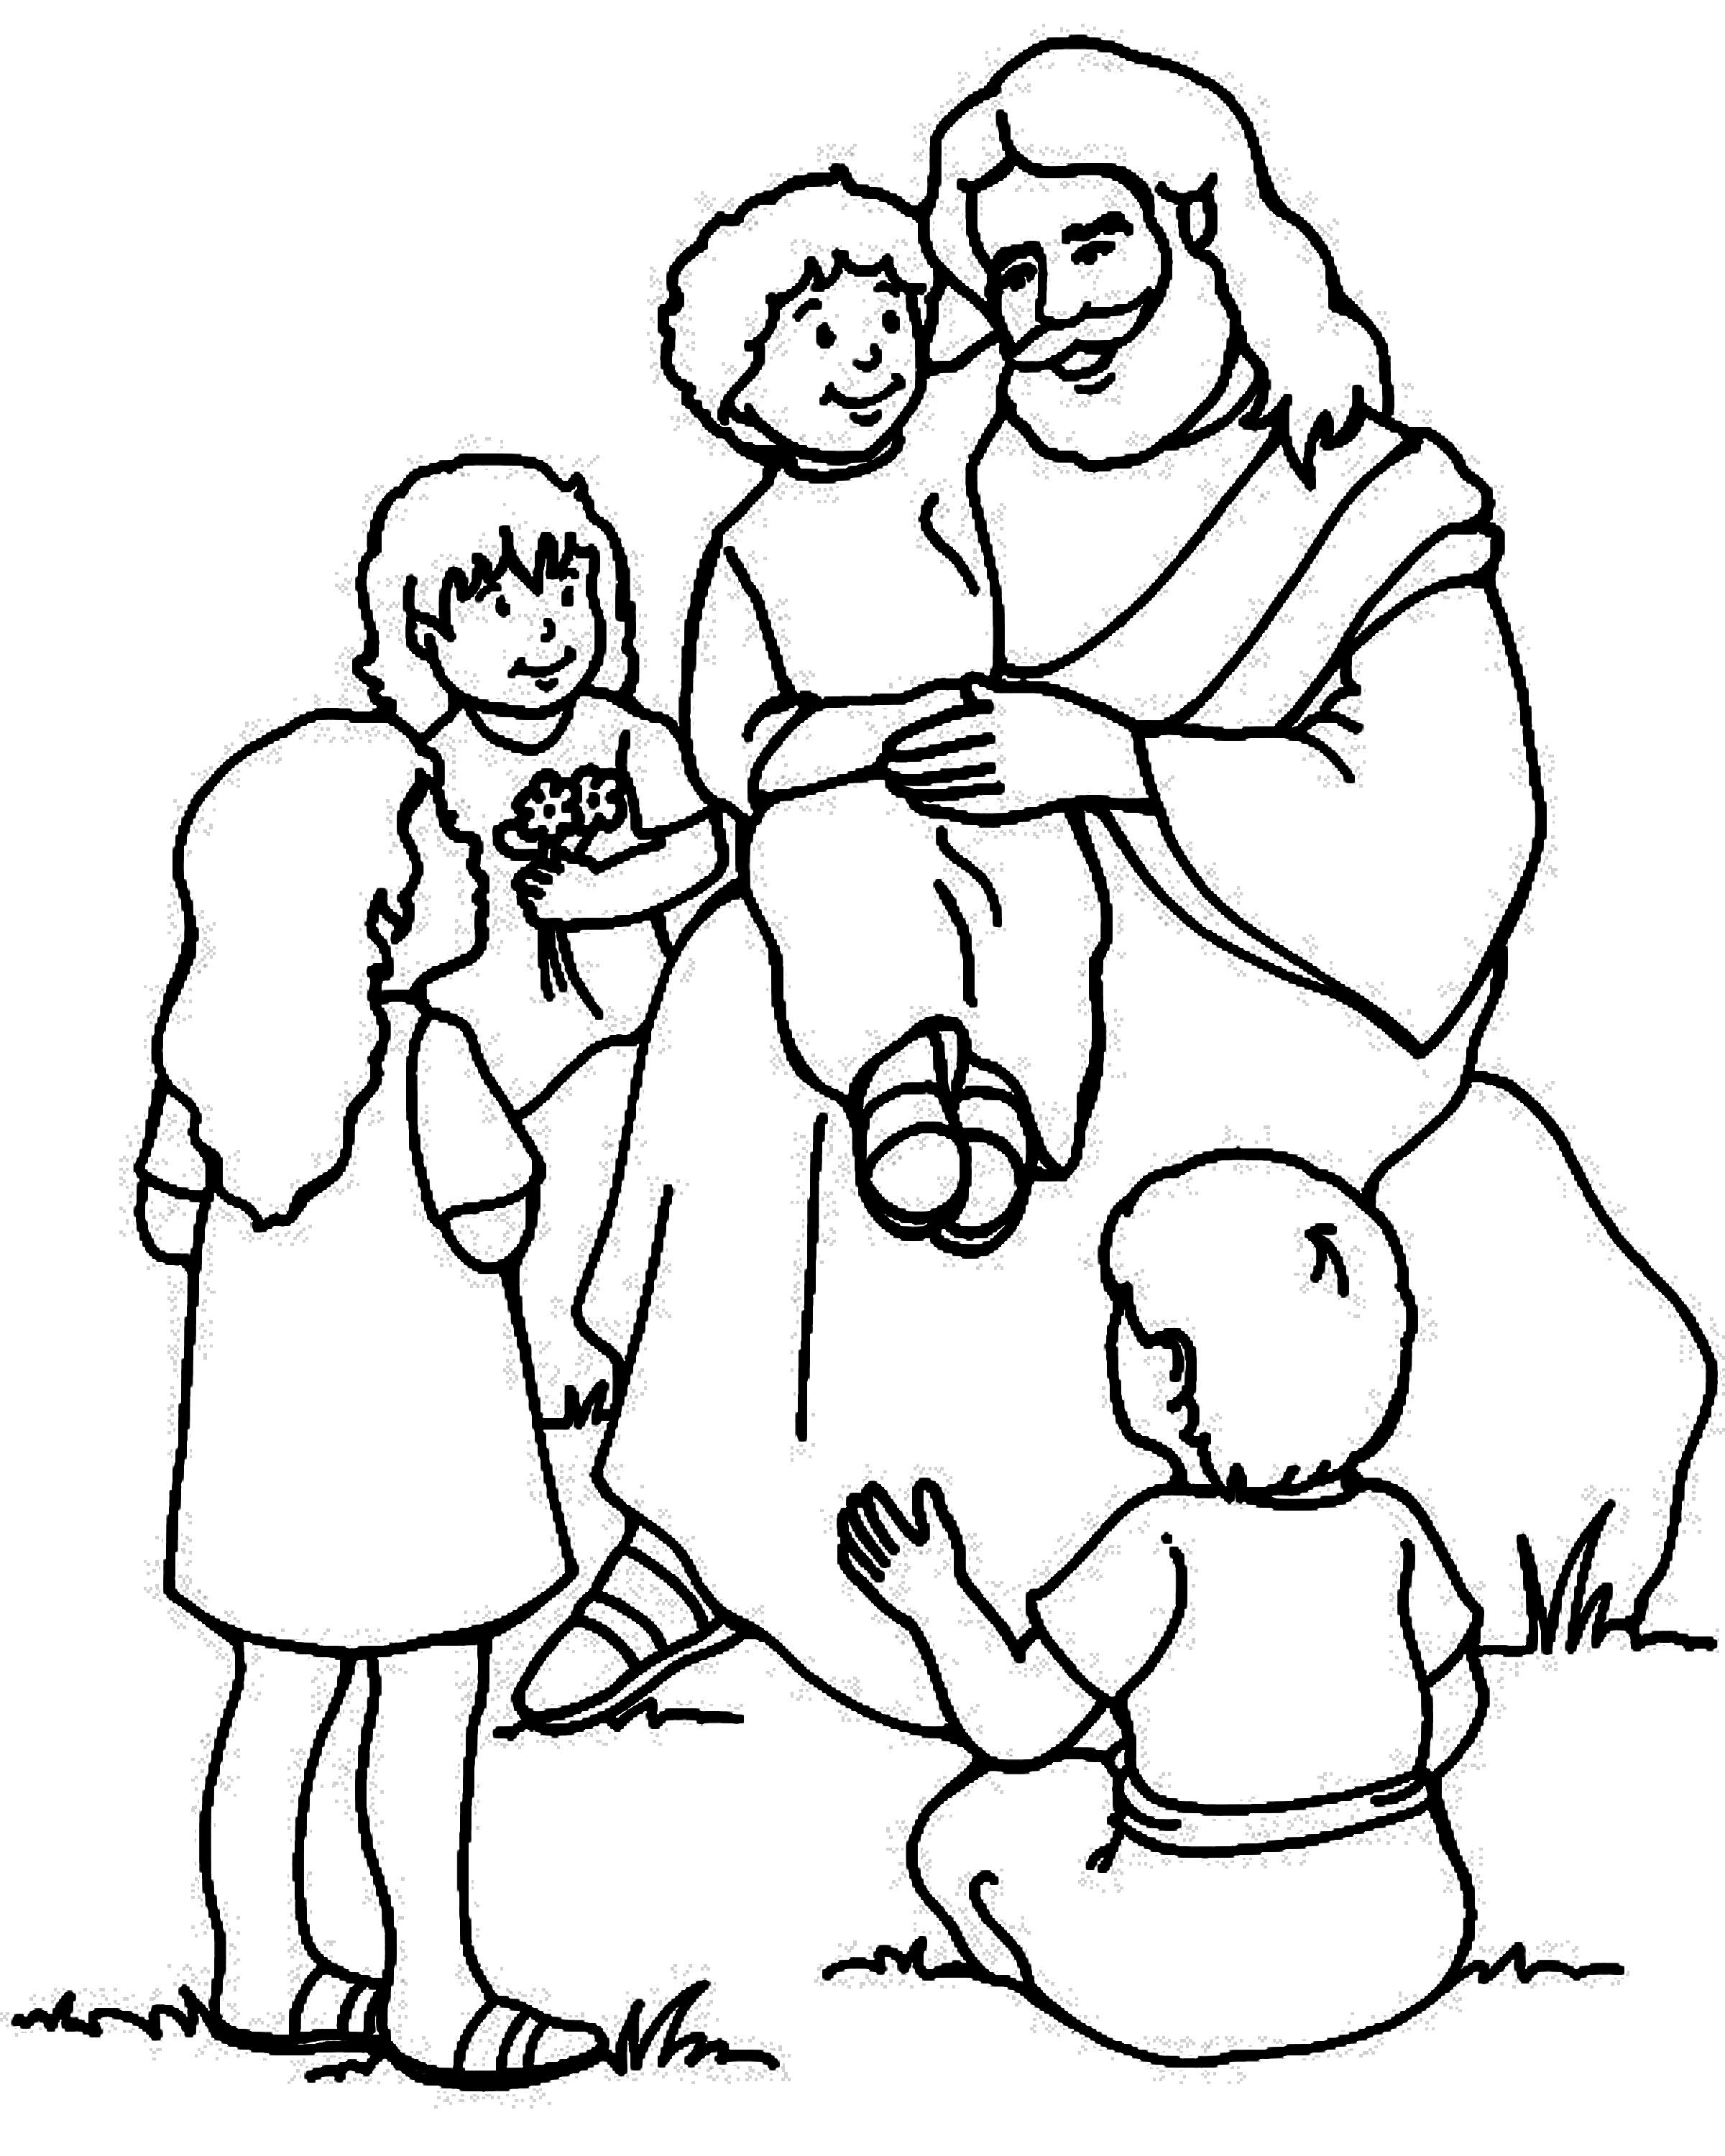 coloring pages | For Little Hands | Pinterest | Sunday school, Bible ...